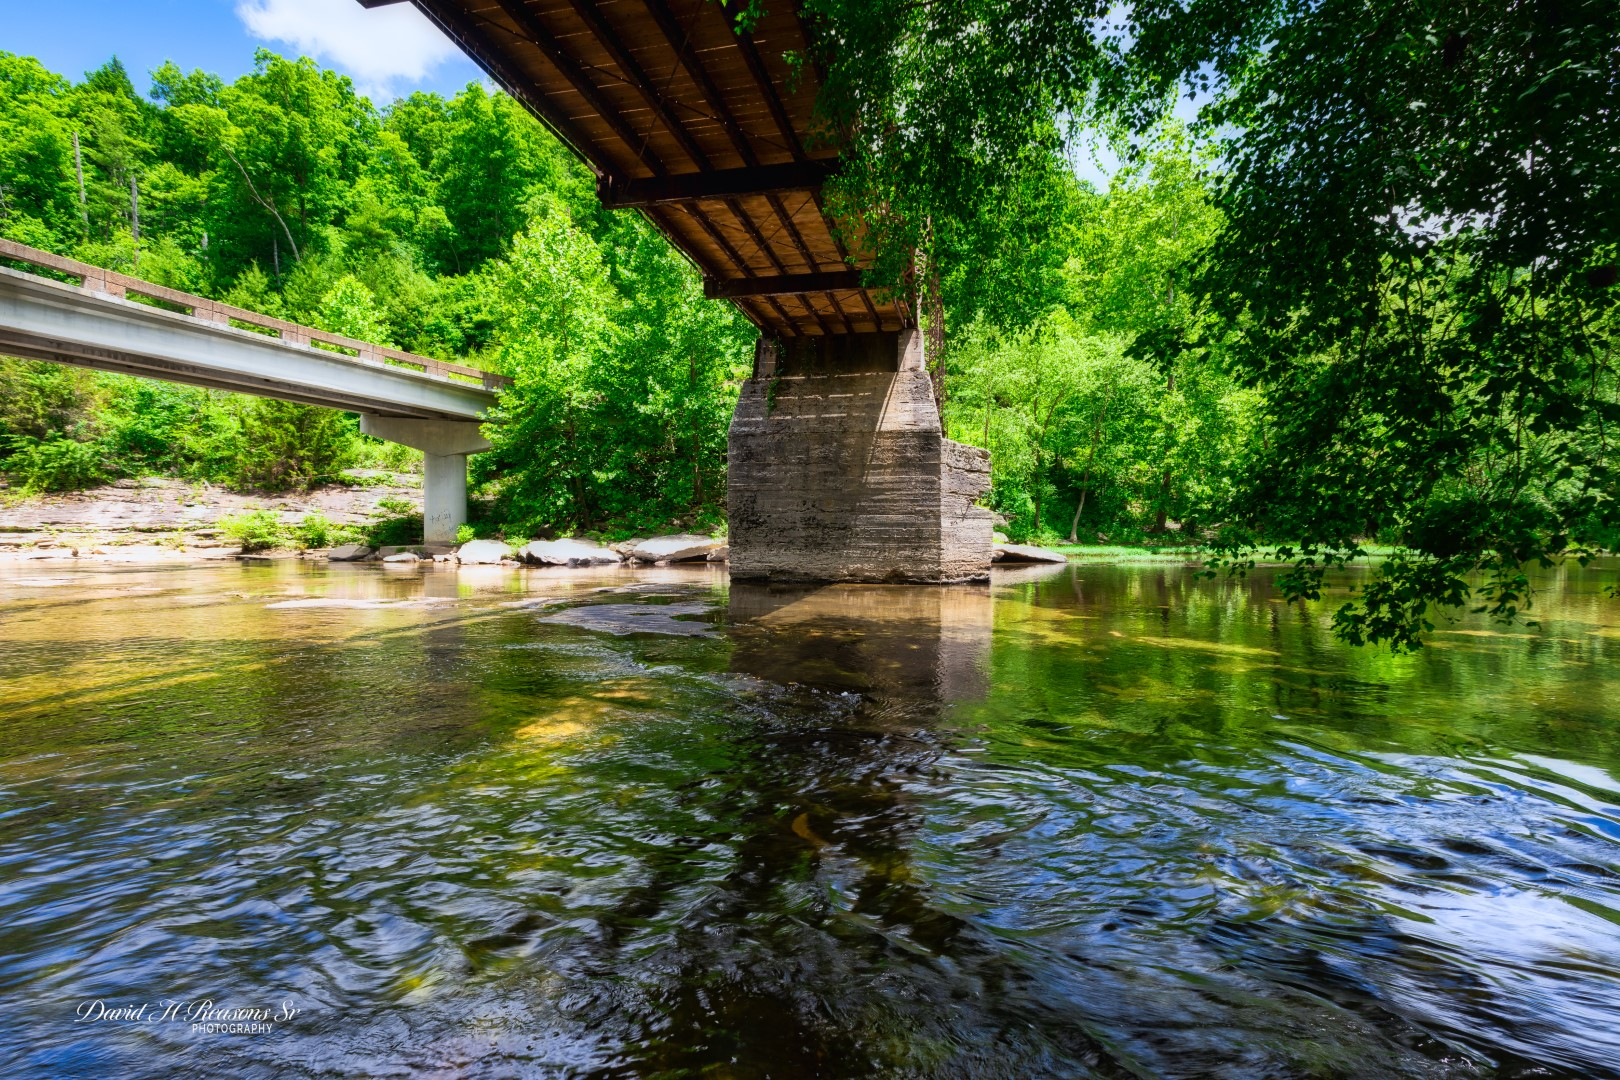 Clear Creek flowing under the bridges